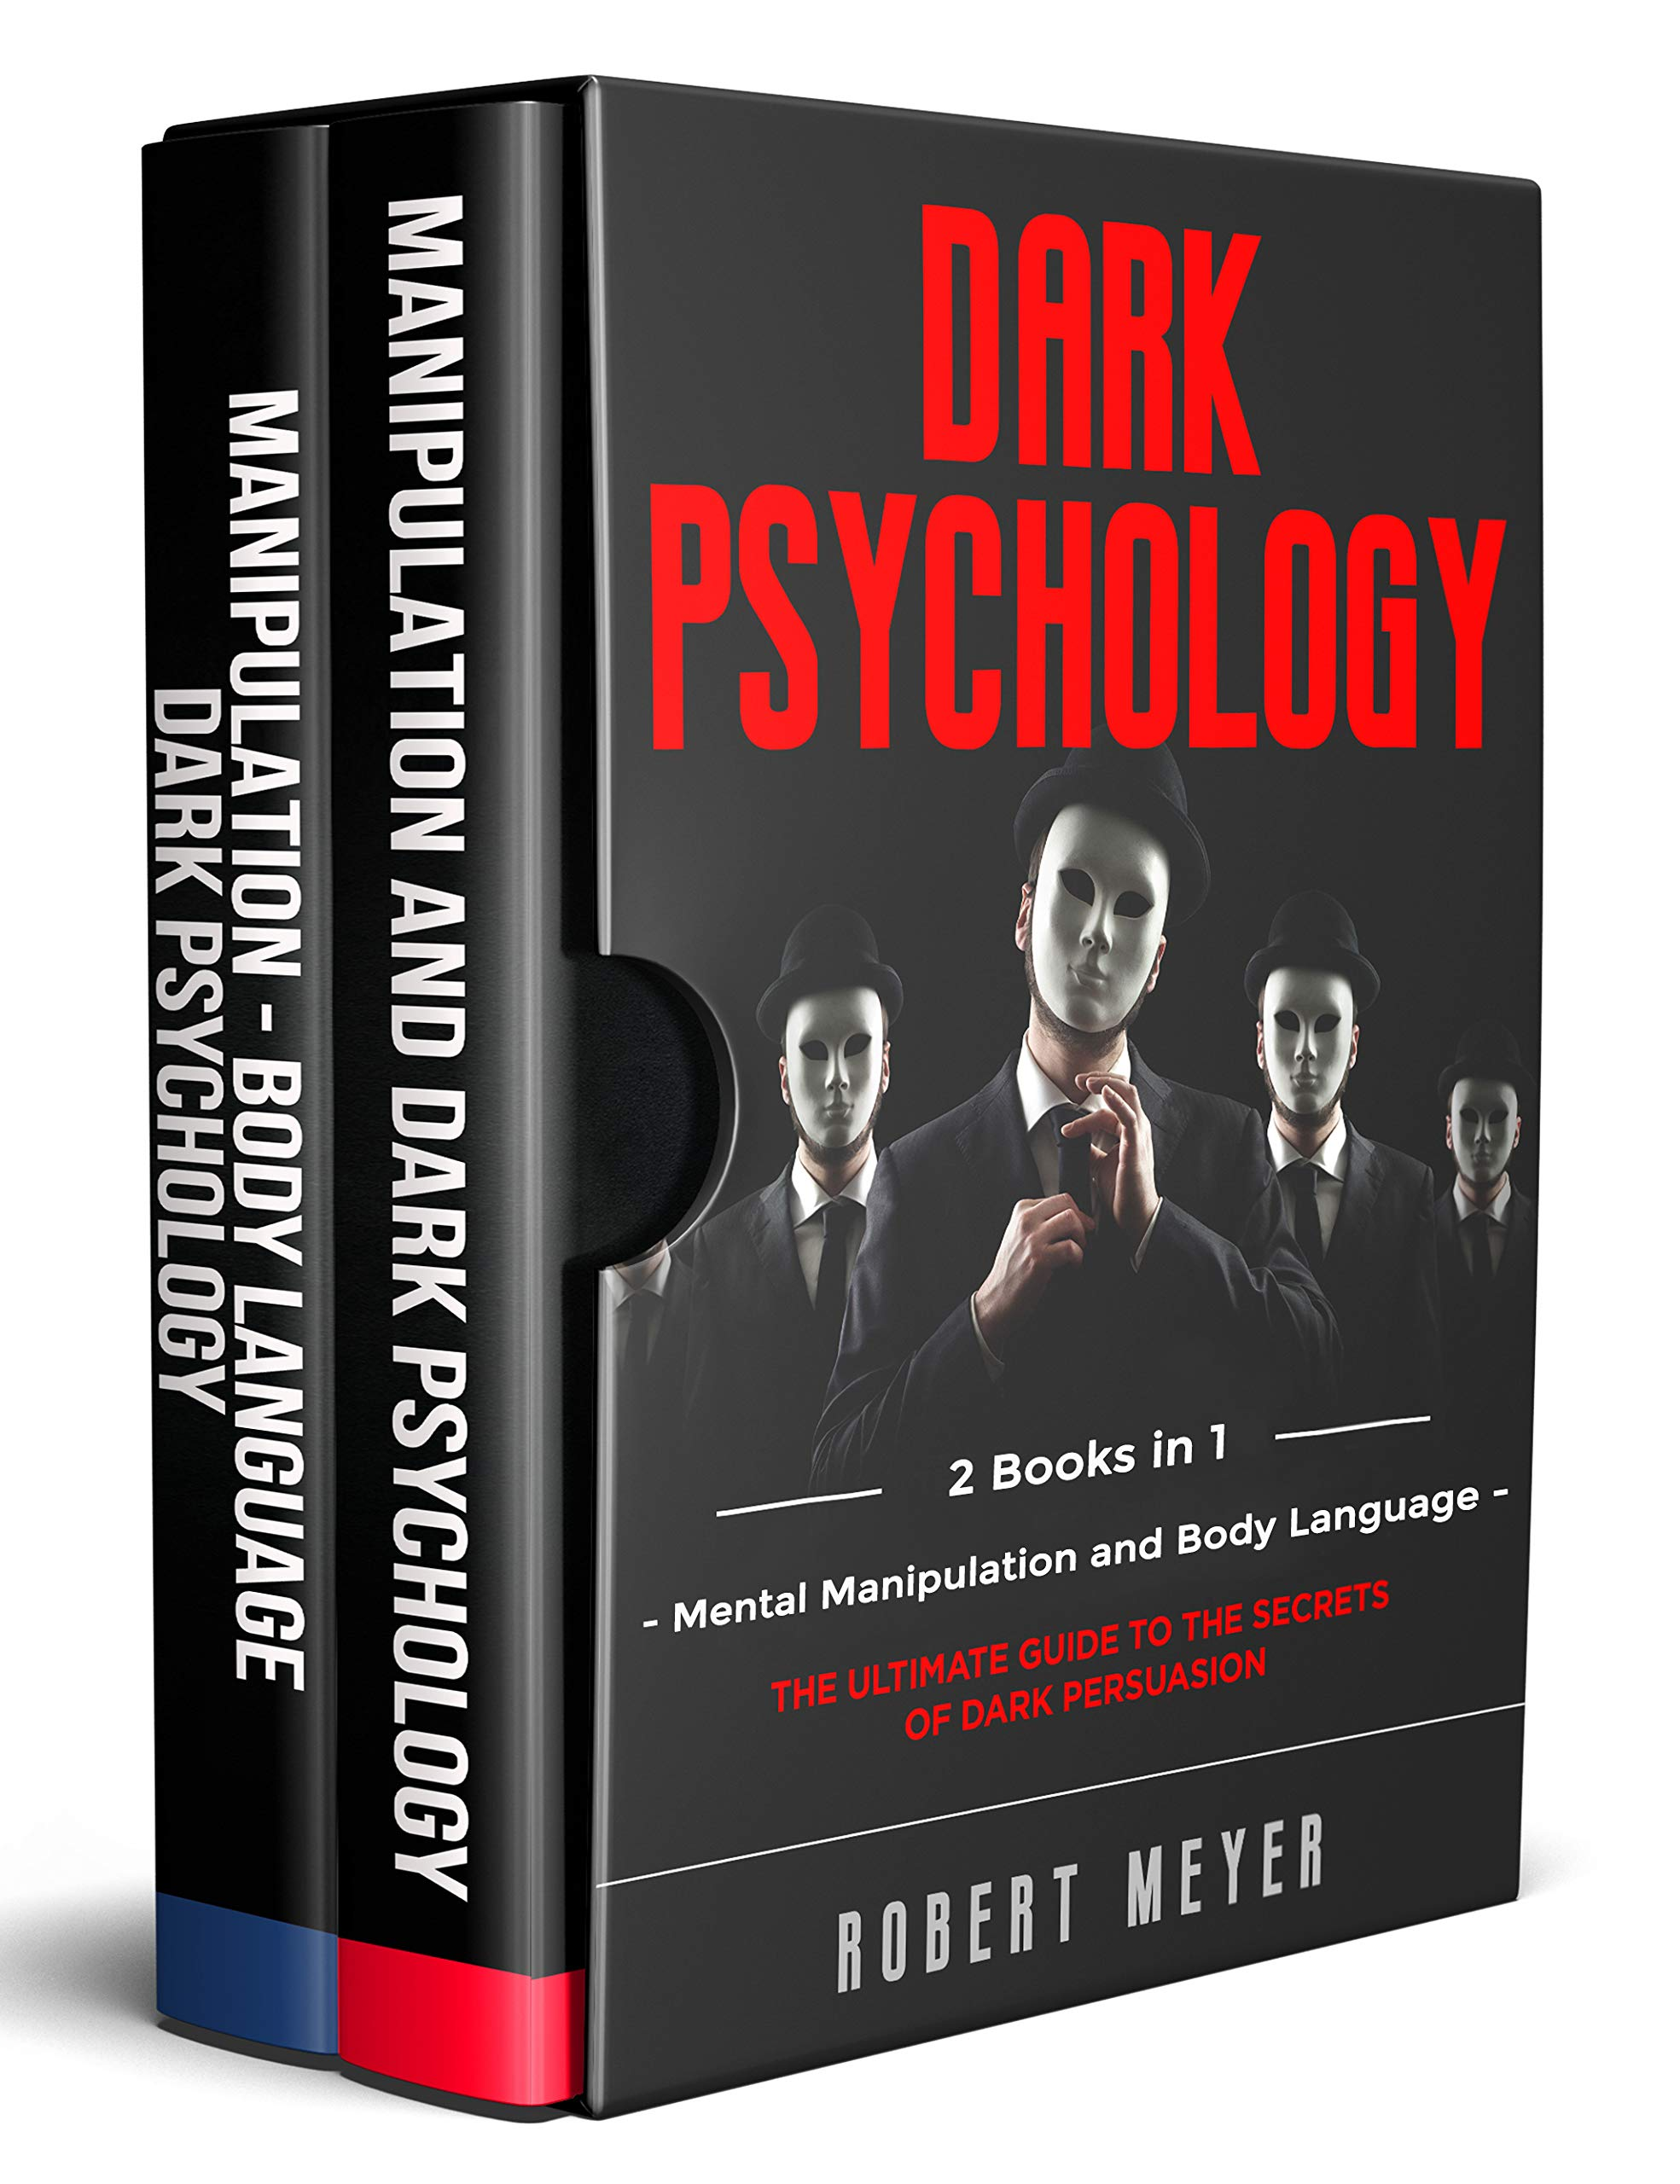 Dark Psychology : 2 Books in 1 - Mental Manipulation and Body Language. The Ultimate Guide to the Secrets of Persuasion.